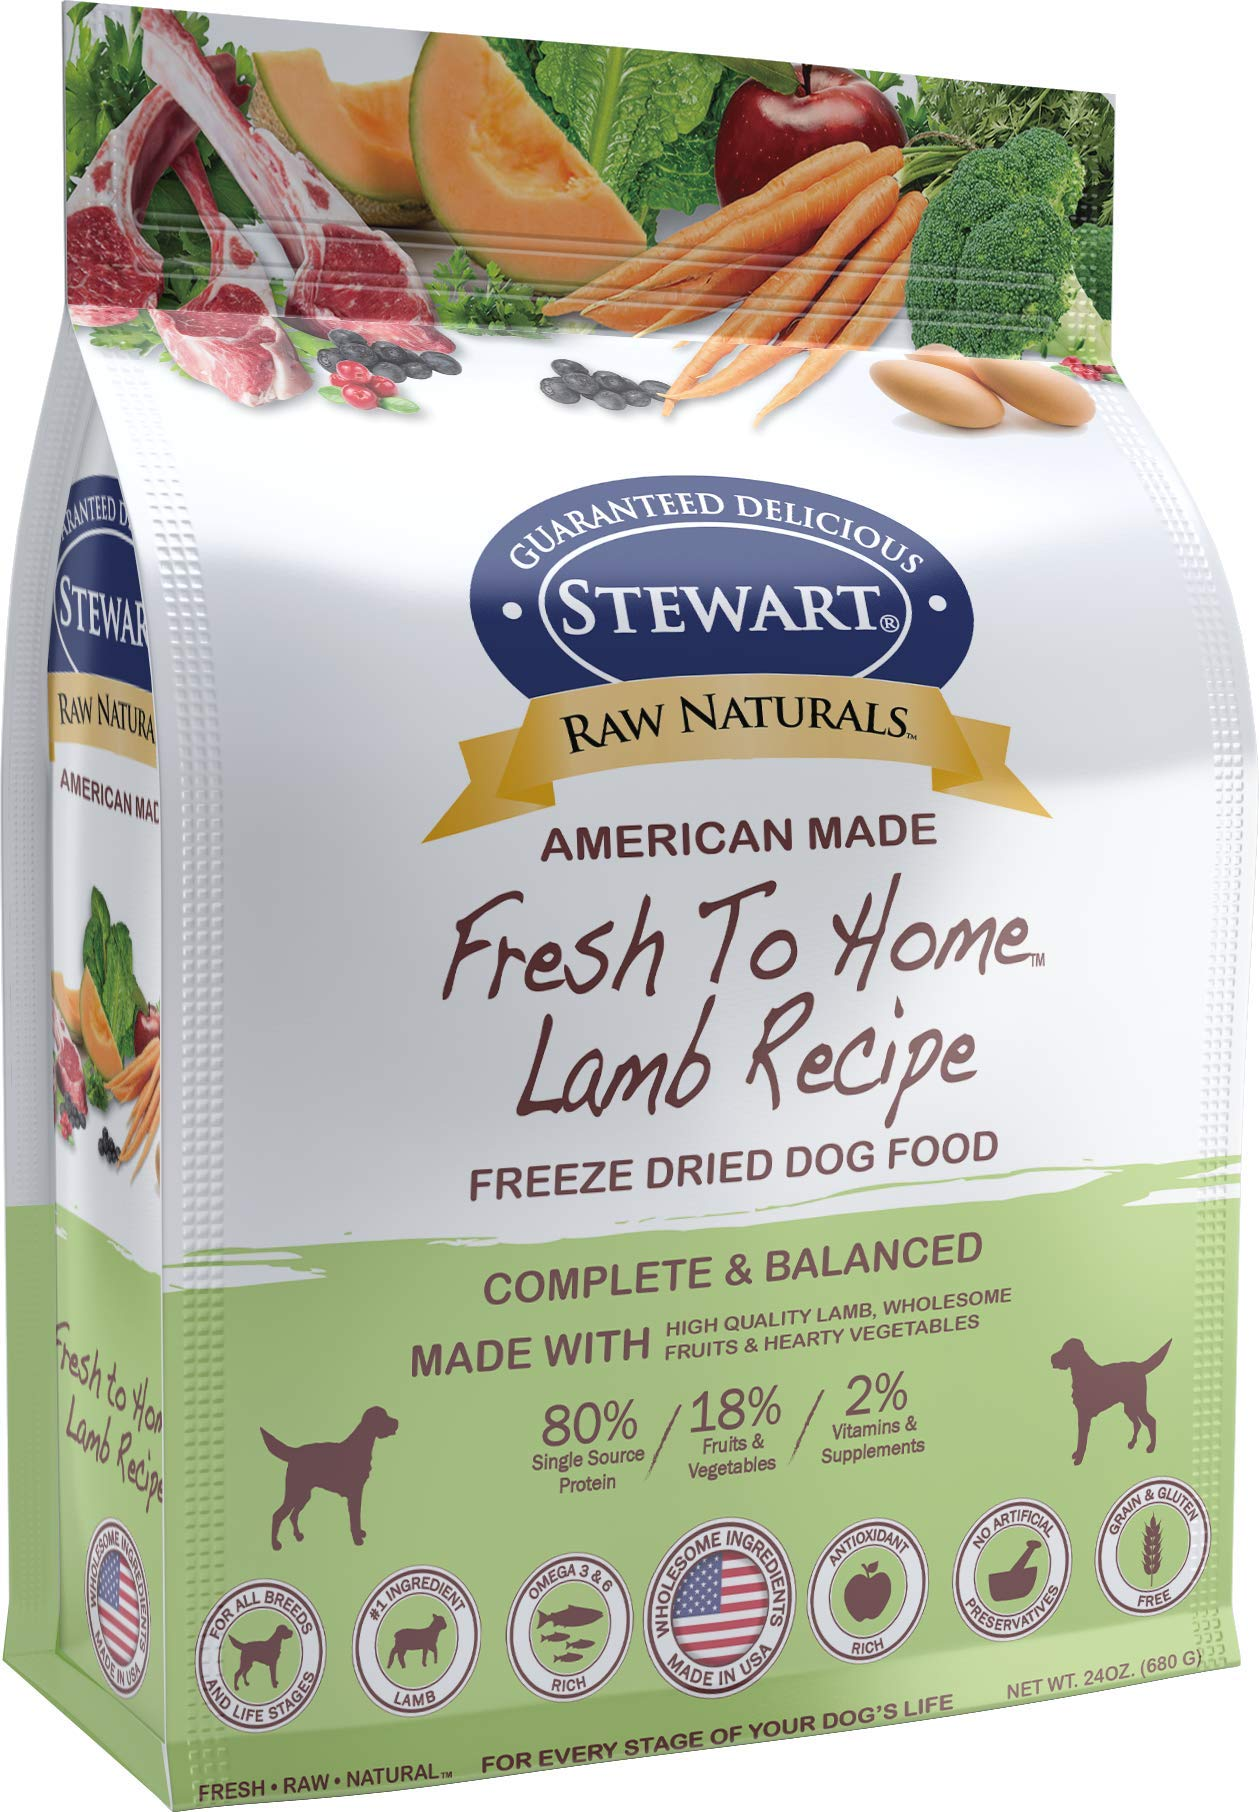 Stewart Raw Naturals Freeze Dried Dog Food Grain Free Made in USA with Lamb, Fruits, & Vegetables for Fresh To Home All Natural Recipe, 24 oz. by Stewart